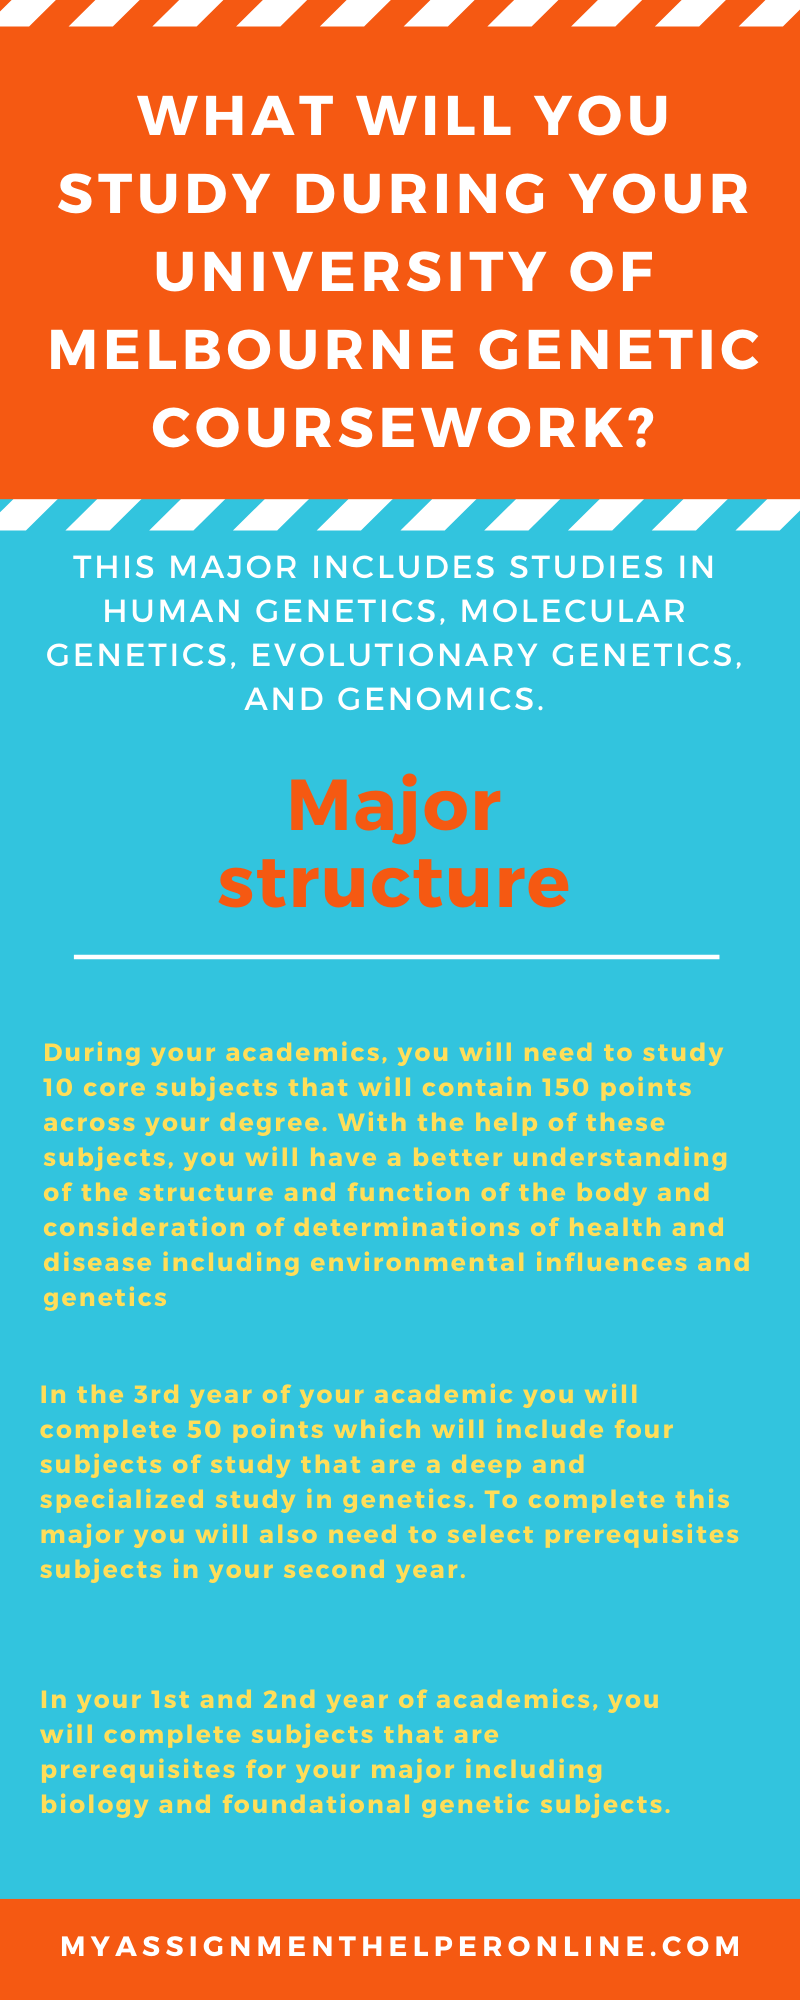 Genetic-coursework